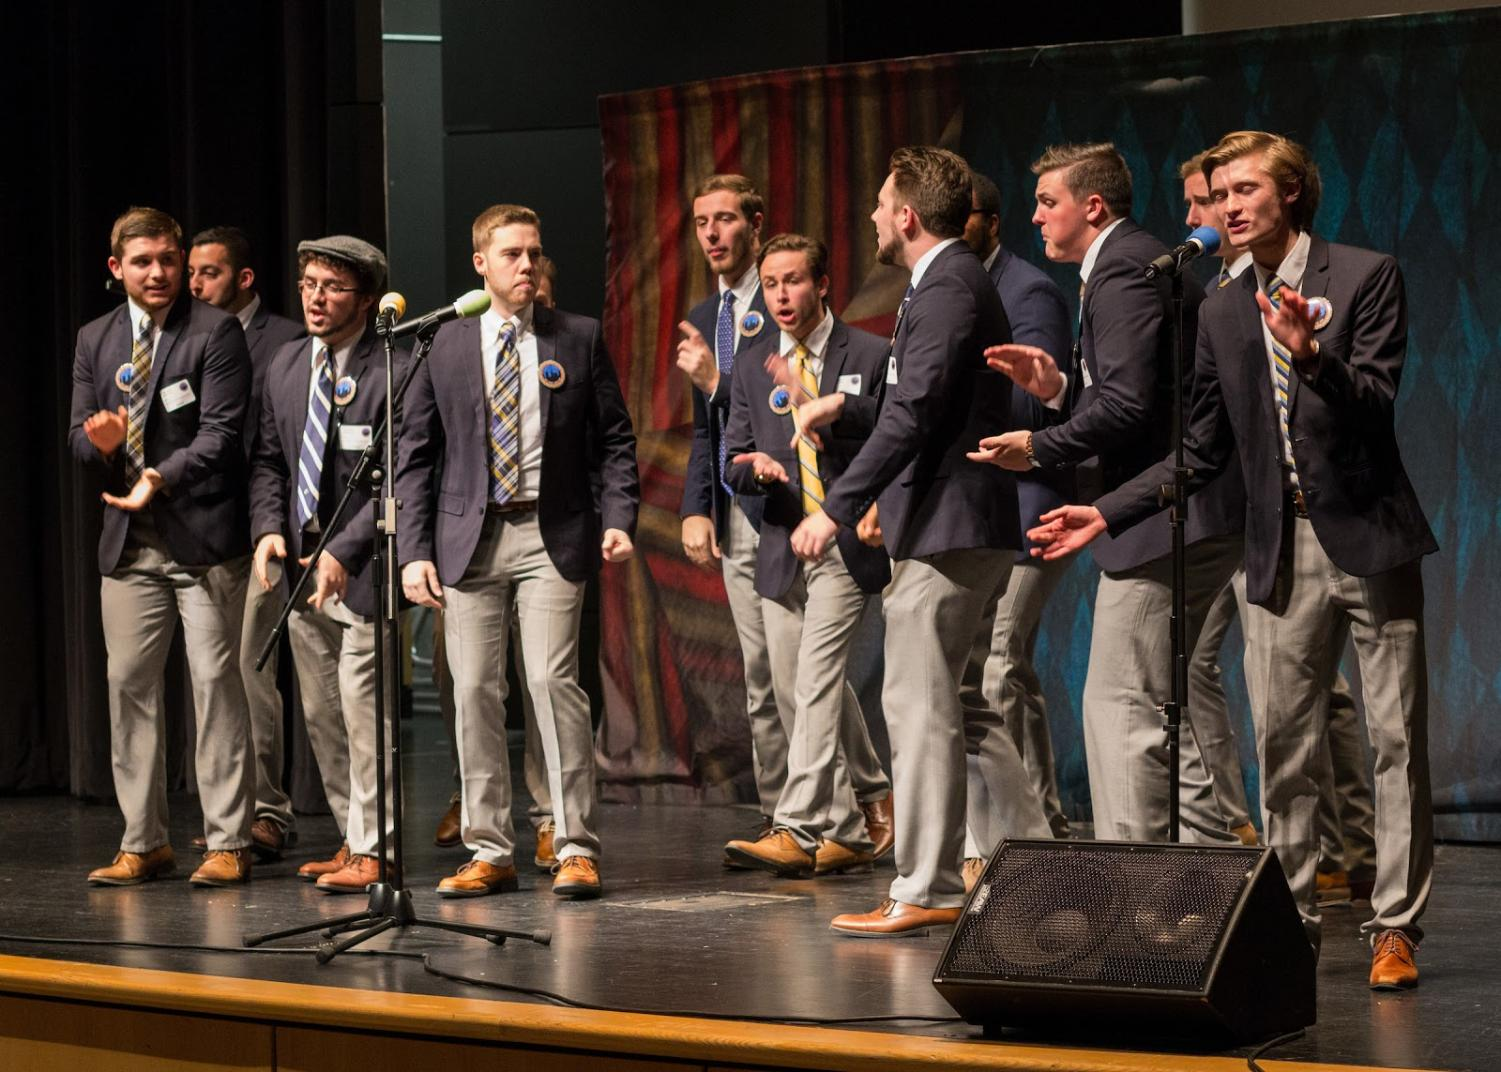 The University of Akron's male a capella group, Nuance sings at First Night Akron 2017.